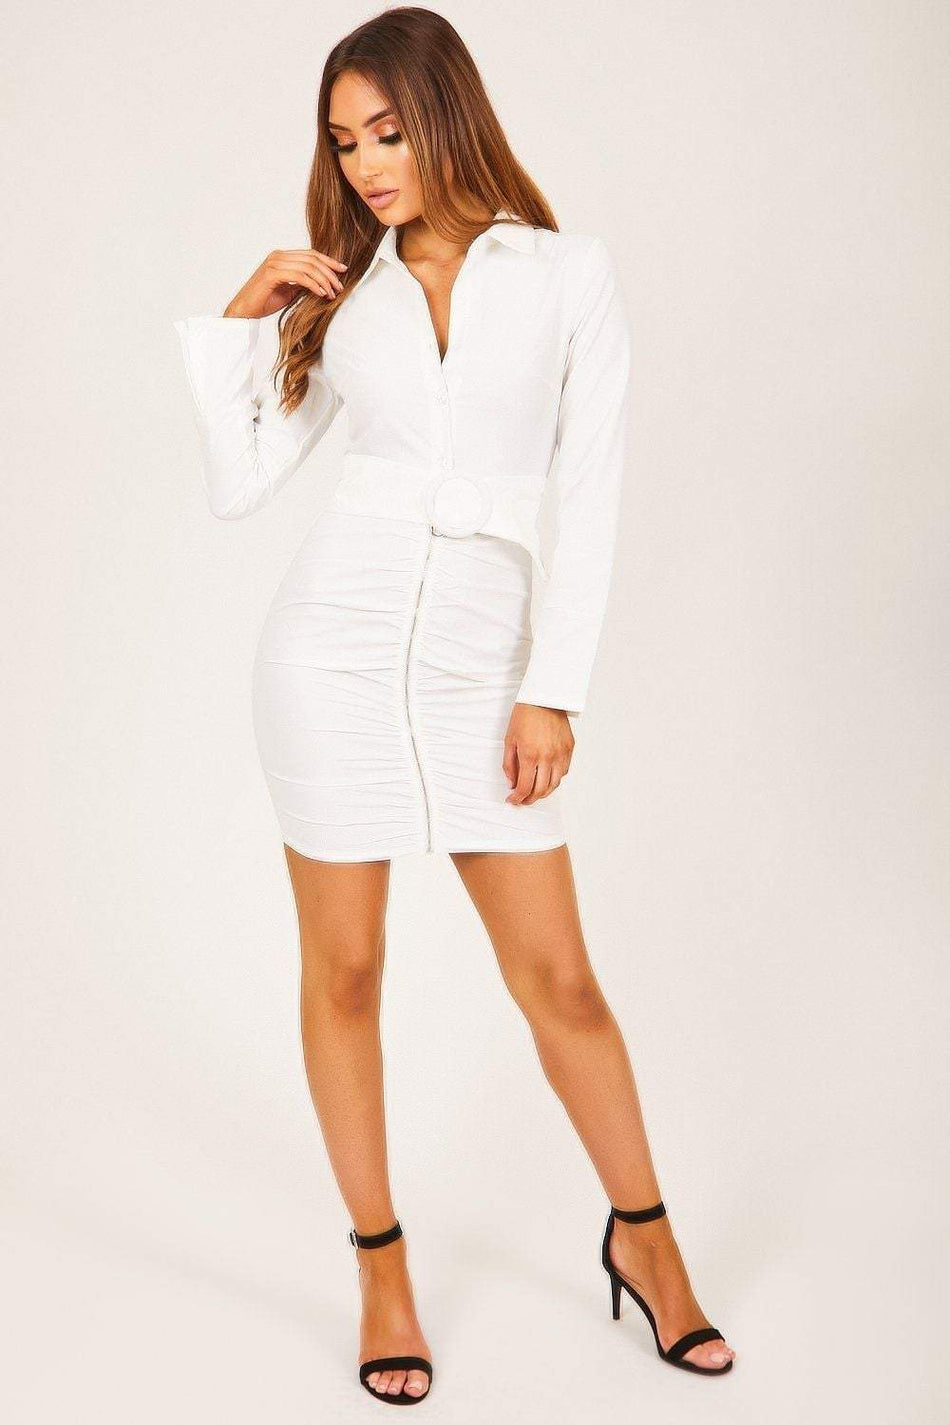 White Ruched Front Dress - KATCH ME